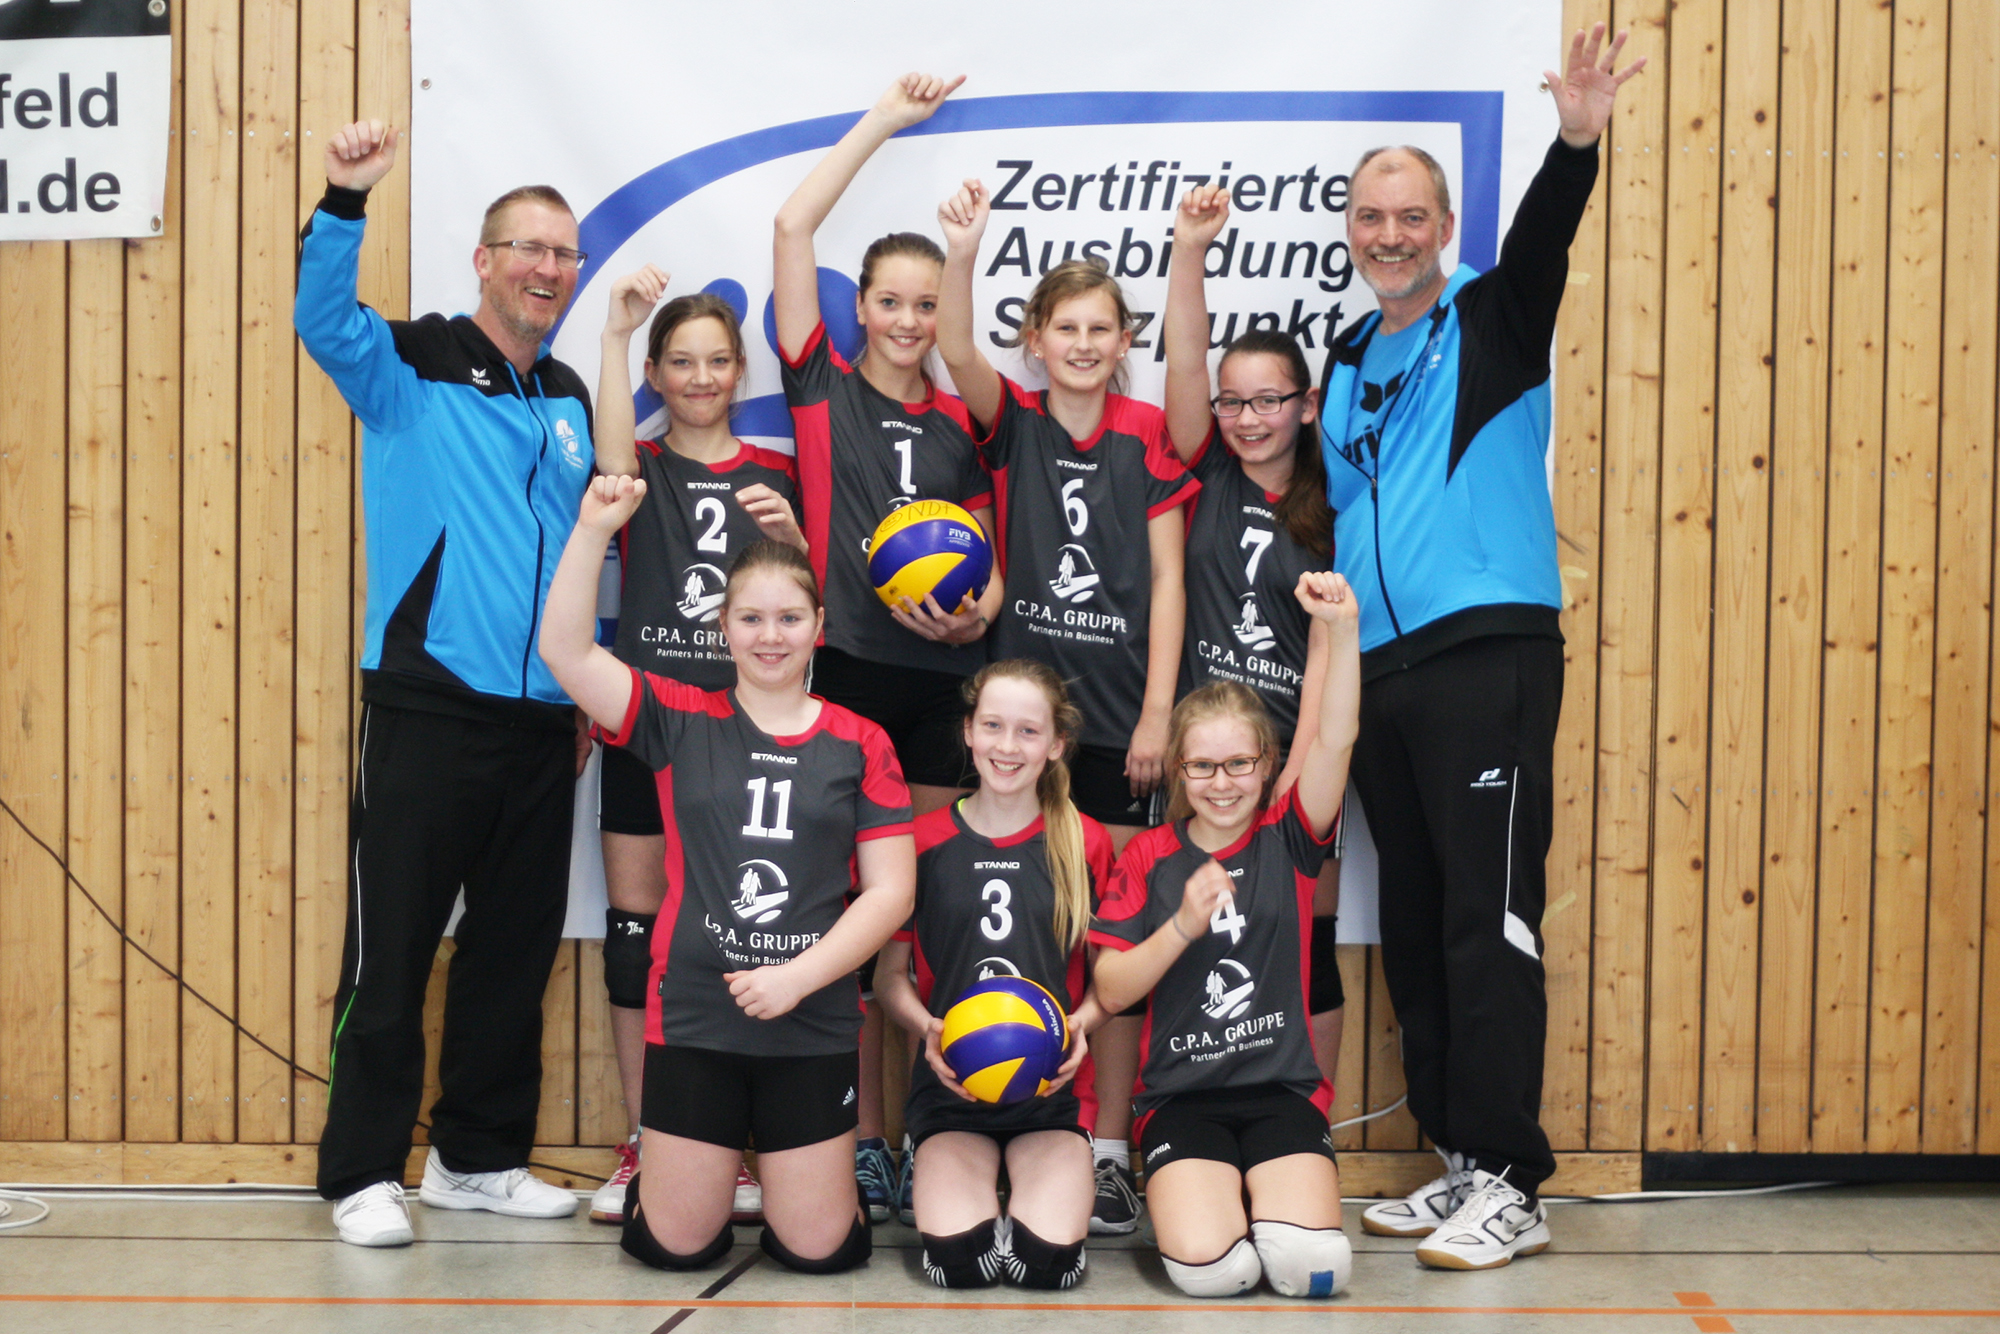 N.H. Young Volleys - Jugend U14